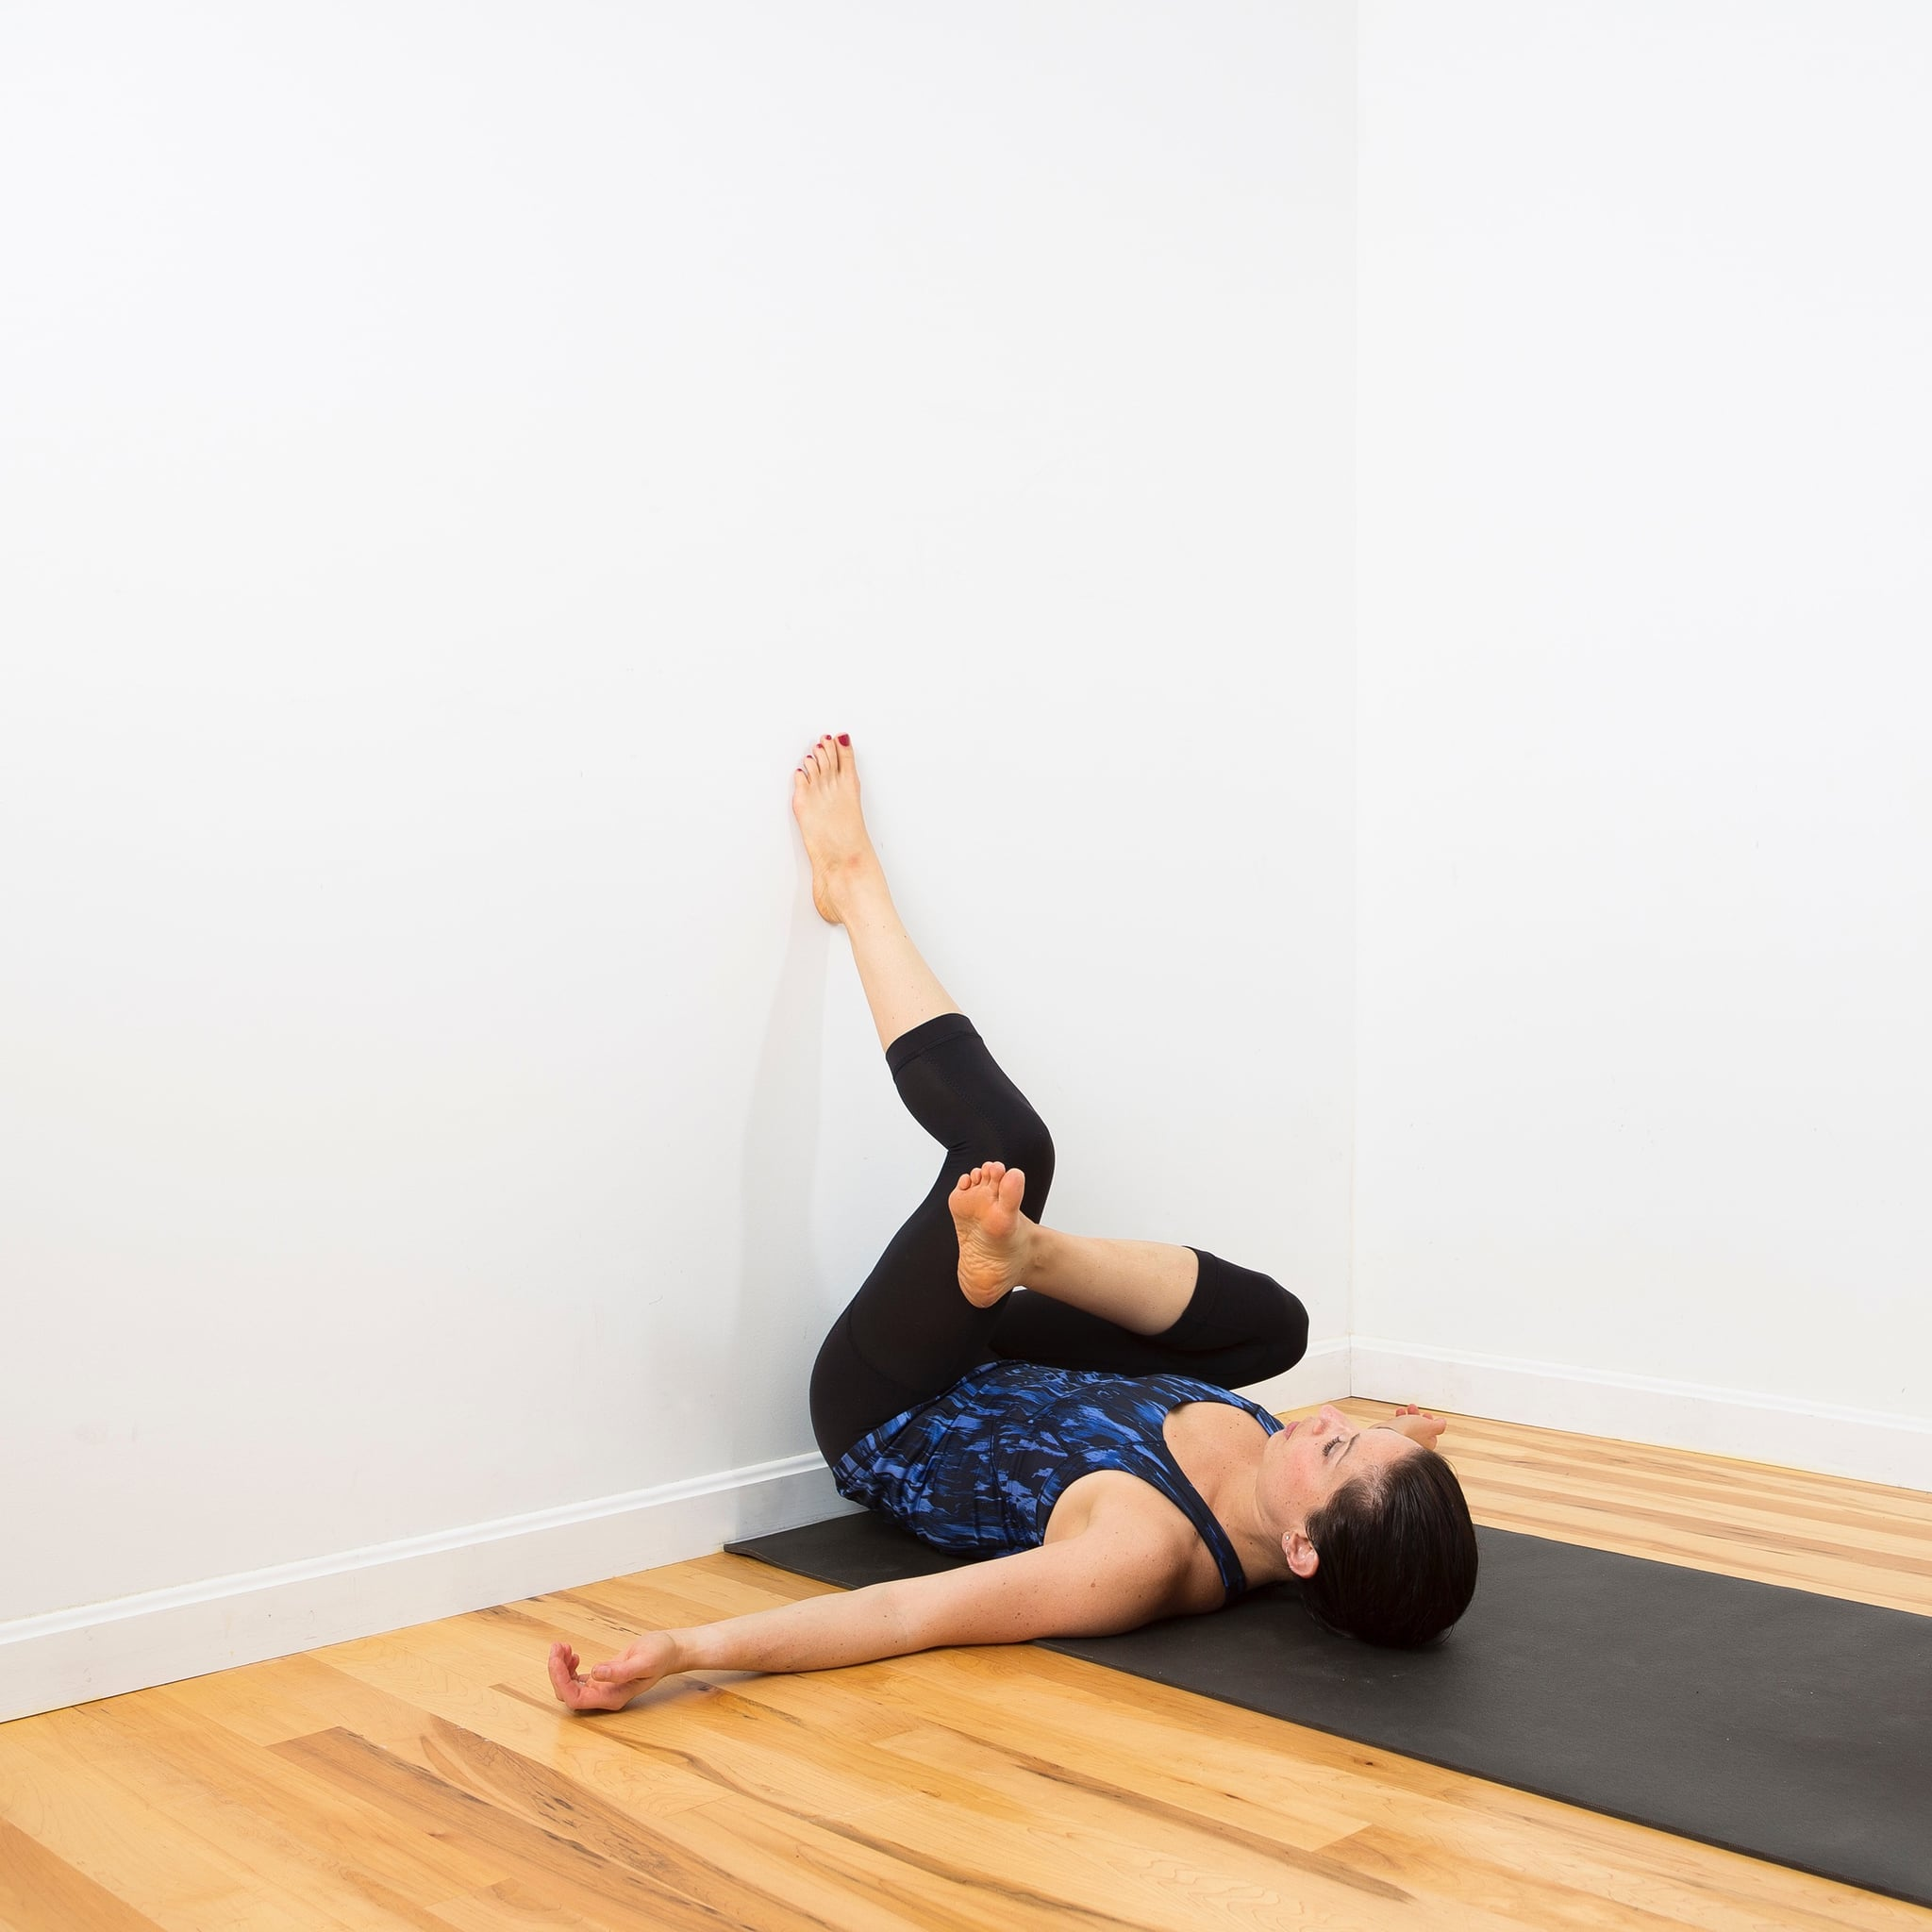 If You Suffer From Tight Hips, Find a Wall ASAP, and Do This Amazing Stretch